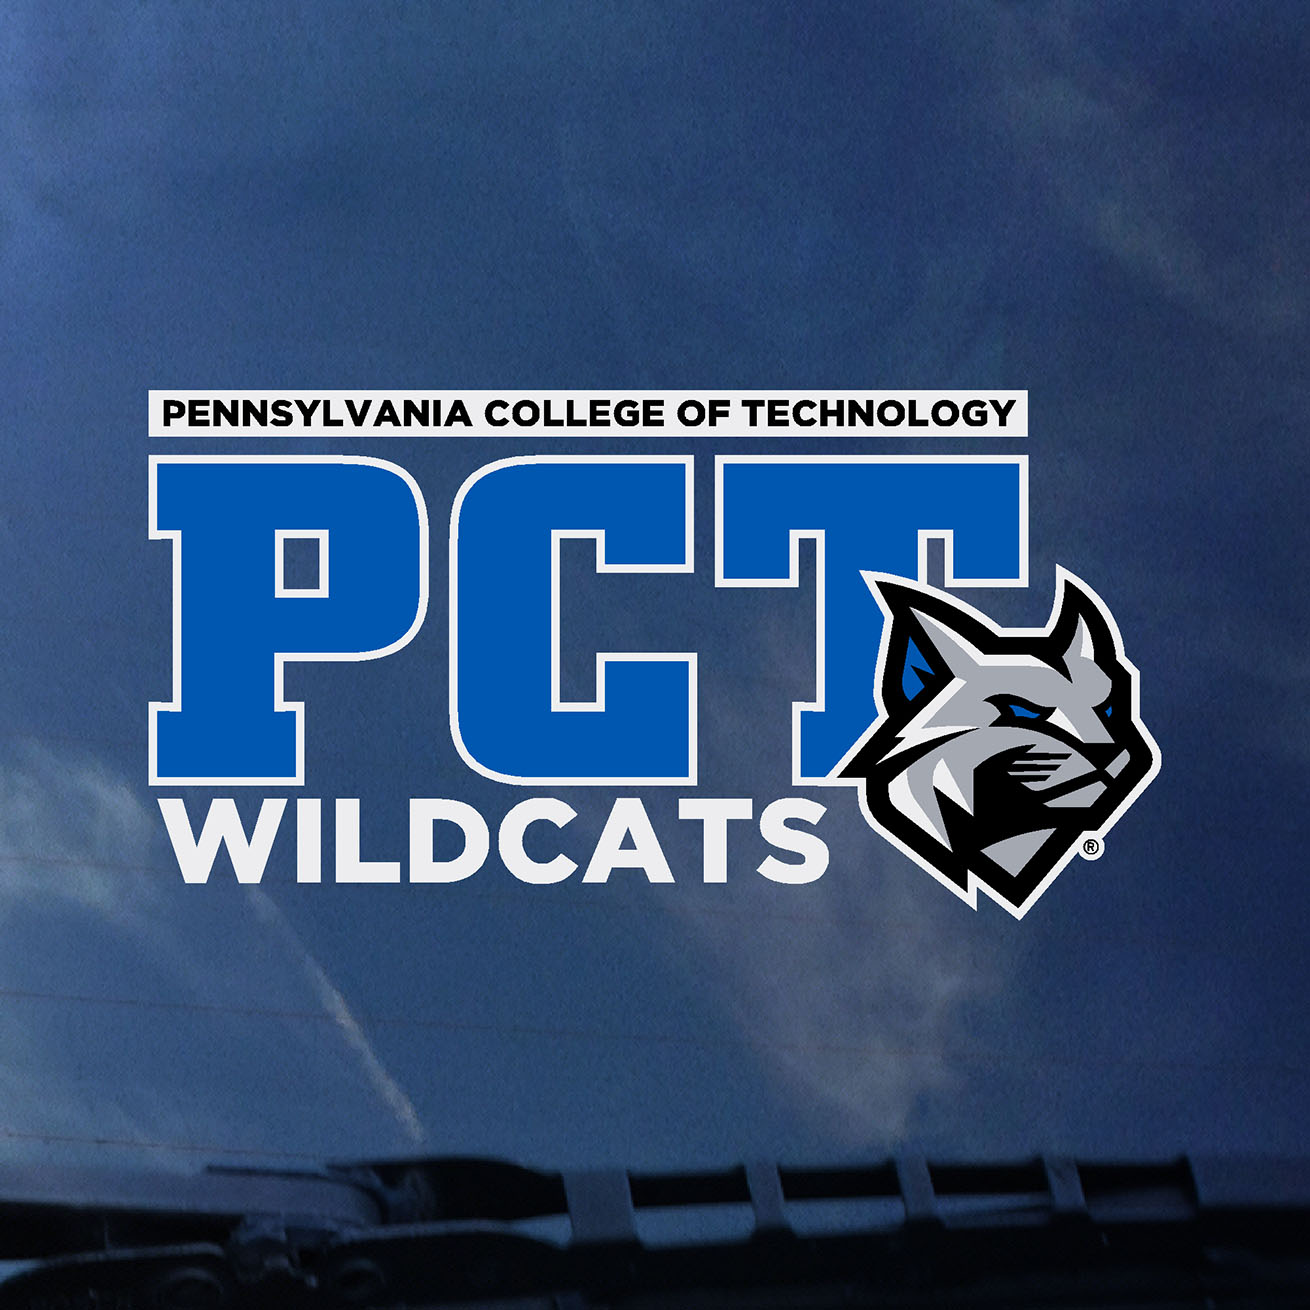 Cover Image For PCT Wildcats Pennsylvania College of Technology Decal